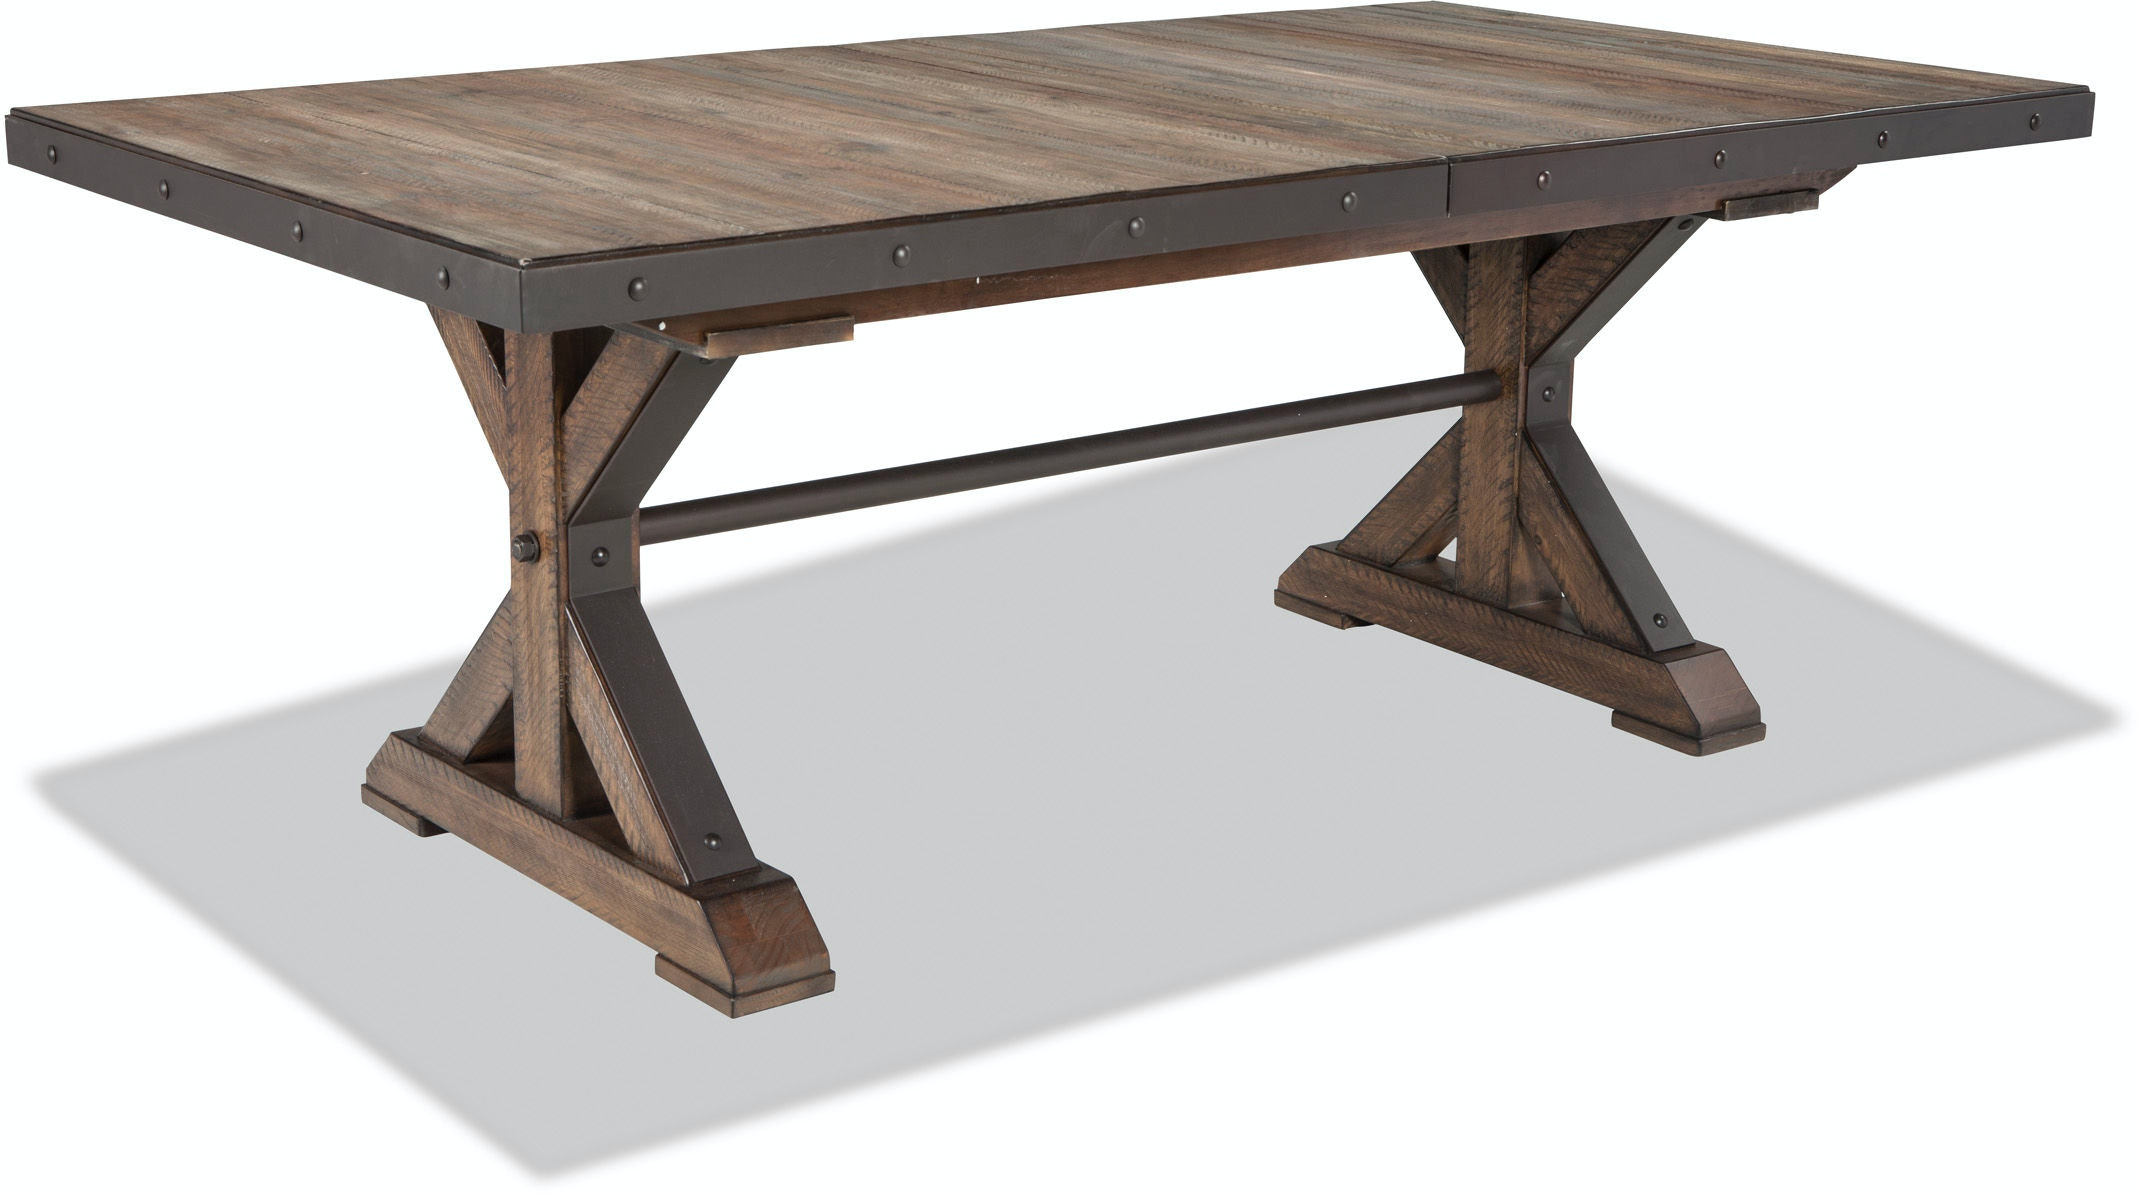 Intercon Dining Room Taos Trestle Table with Storing Leaf  : taostrestletablesilo from www.stacyfurniture.com size 1024 x 768 jpeg 33kB